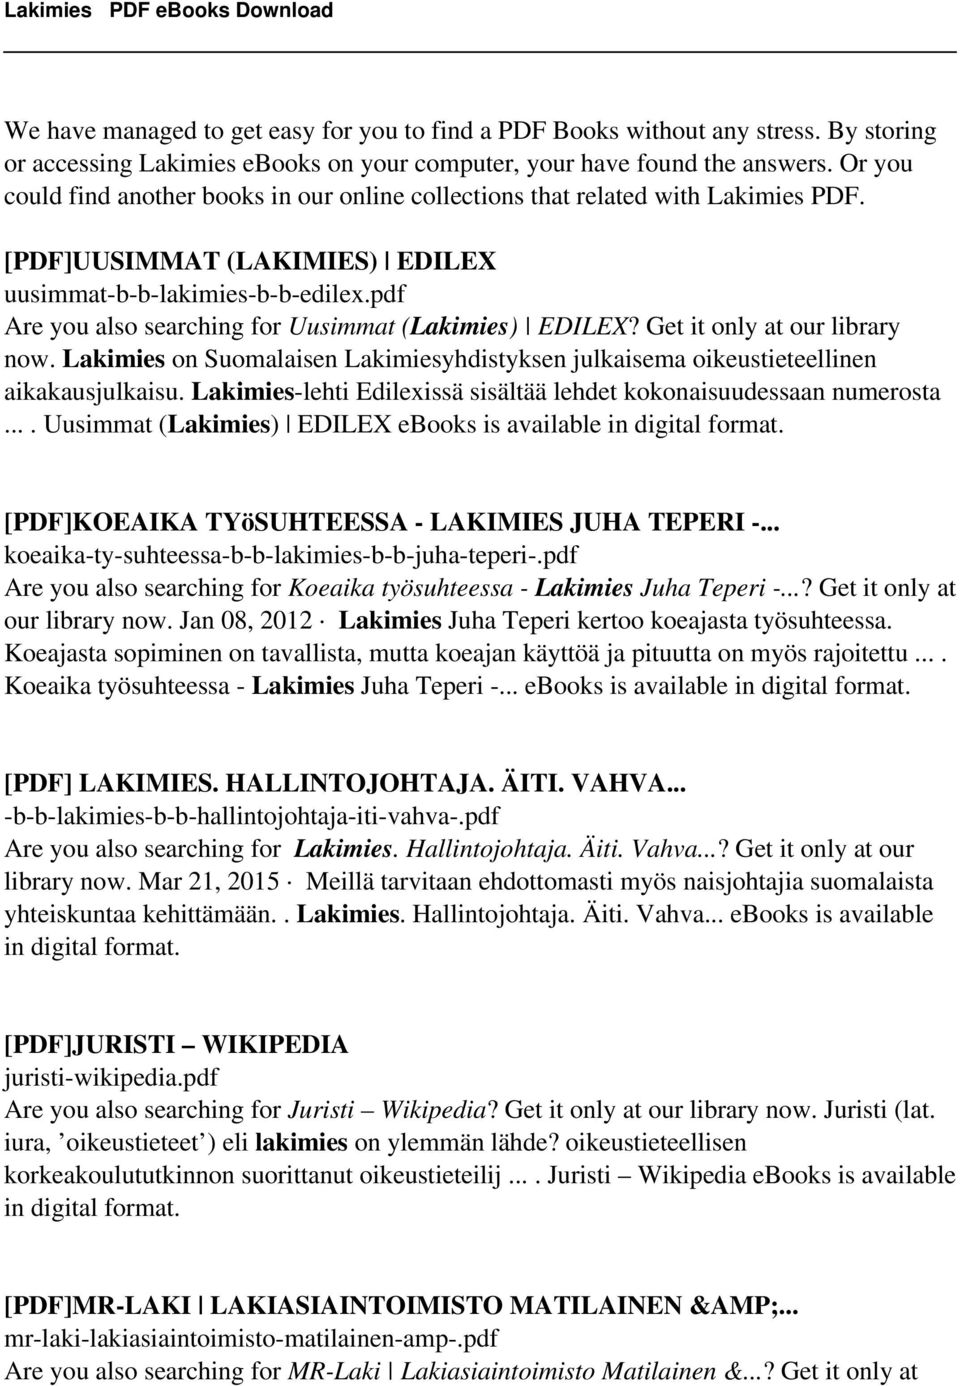 pdf Are you also searching for Uusimmat (Lakimies) EDILEX? Get it only at our library now. Lakimies on Suomalaisen Lakimiesyhdistyksen julkaisema oikeustieteellinen aikakausjulkaisu.